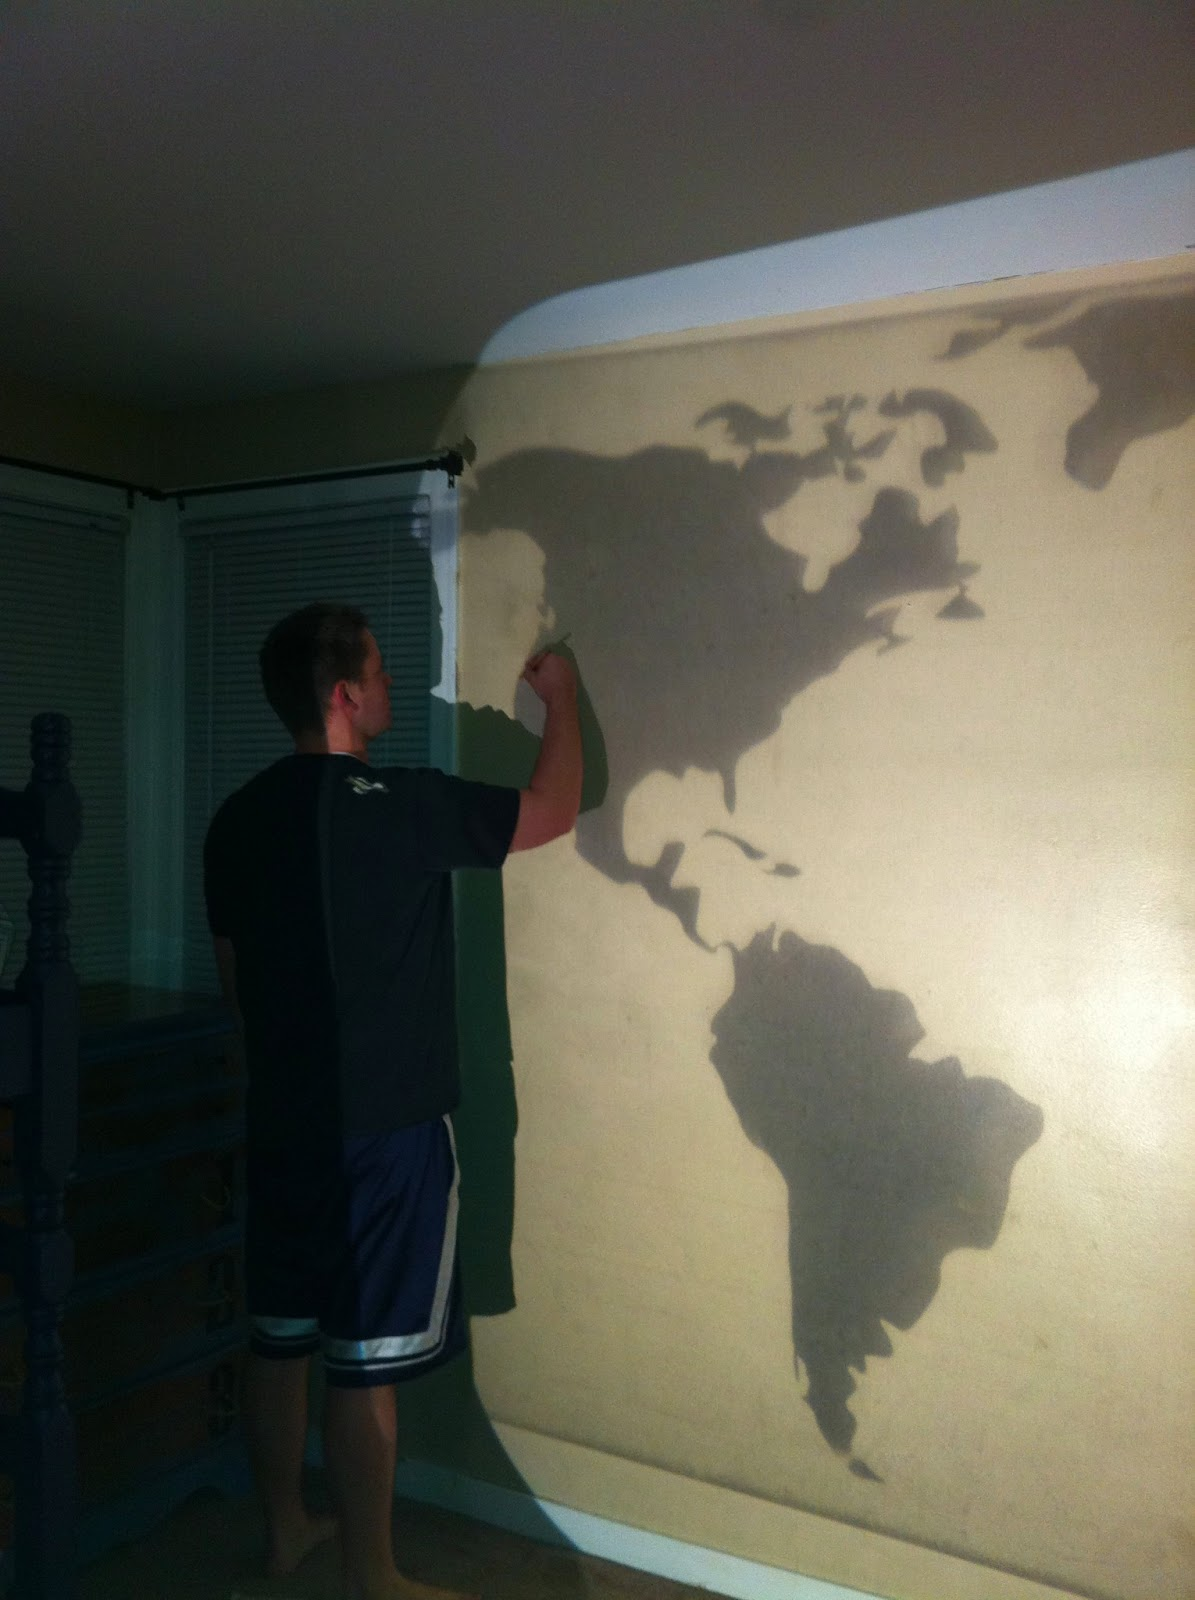 Diy world map wall mural classy clutter for Creating a mural